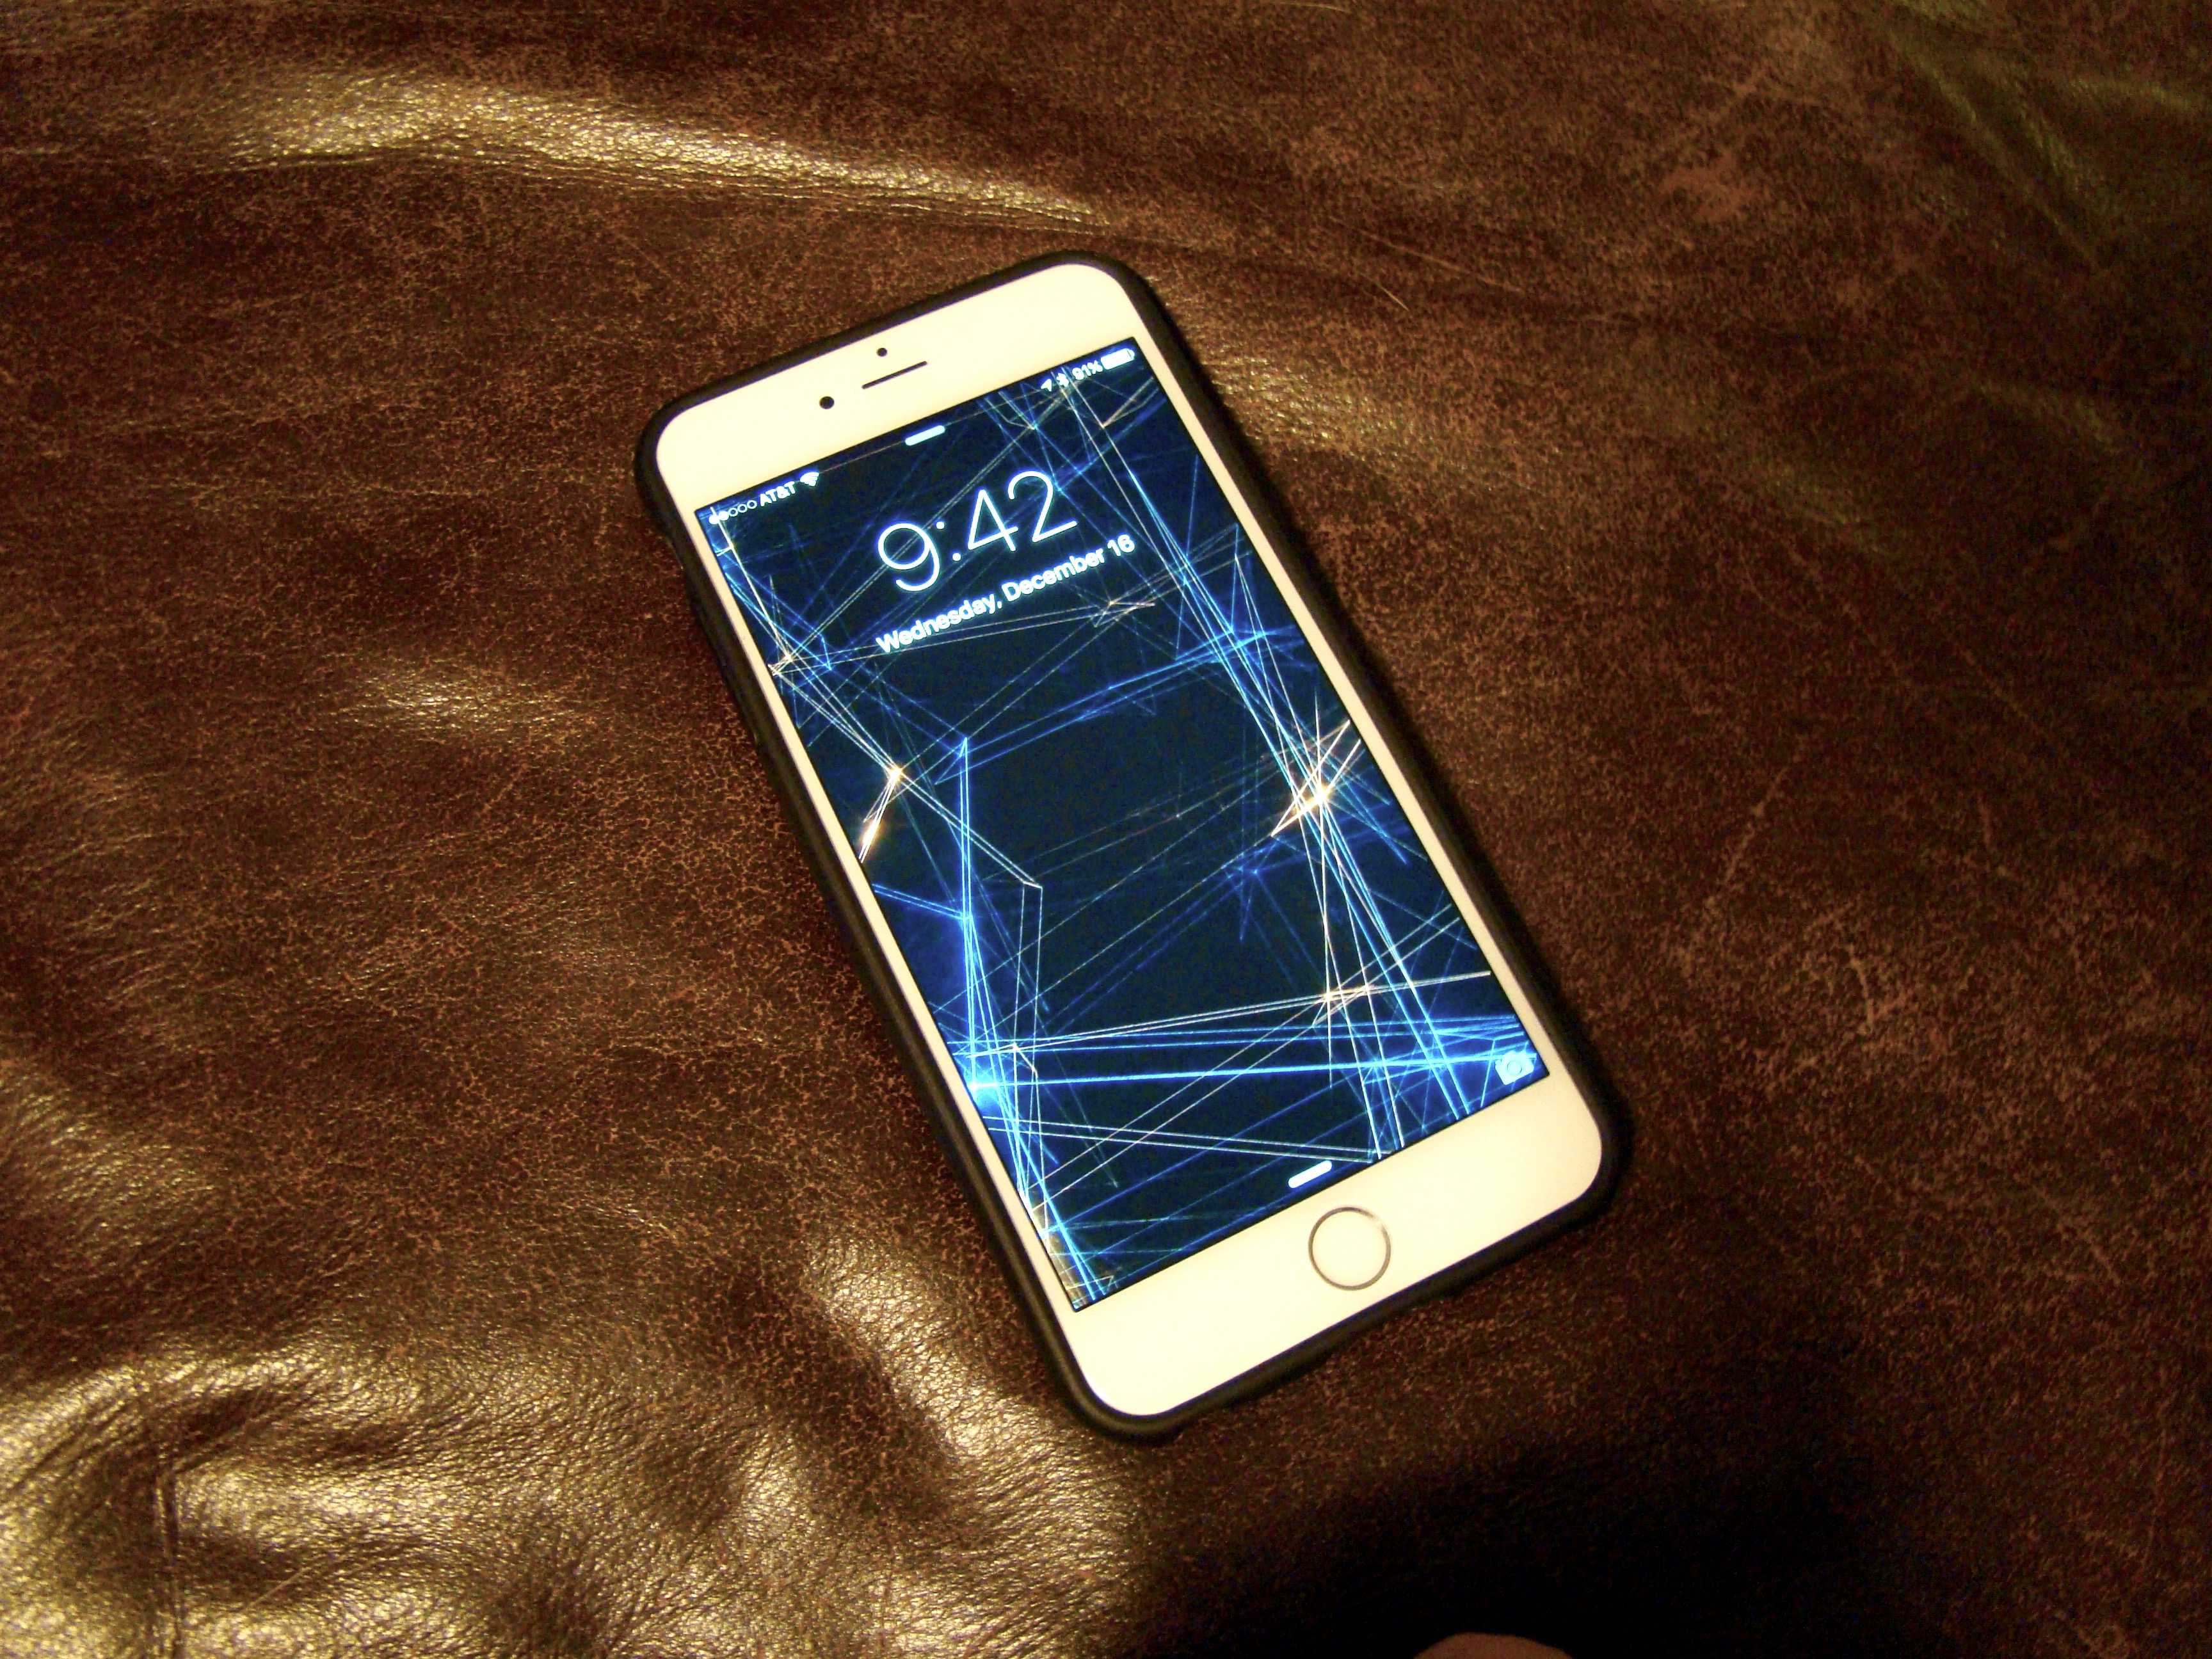 48 Live Wallpapers For Iphone On Wallpapersafari